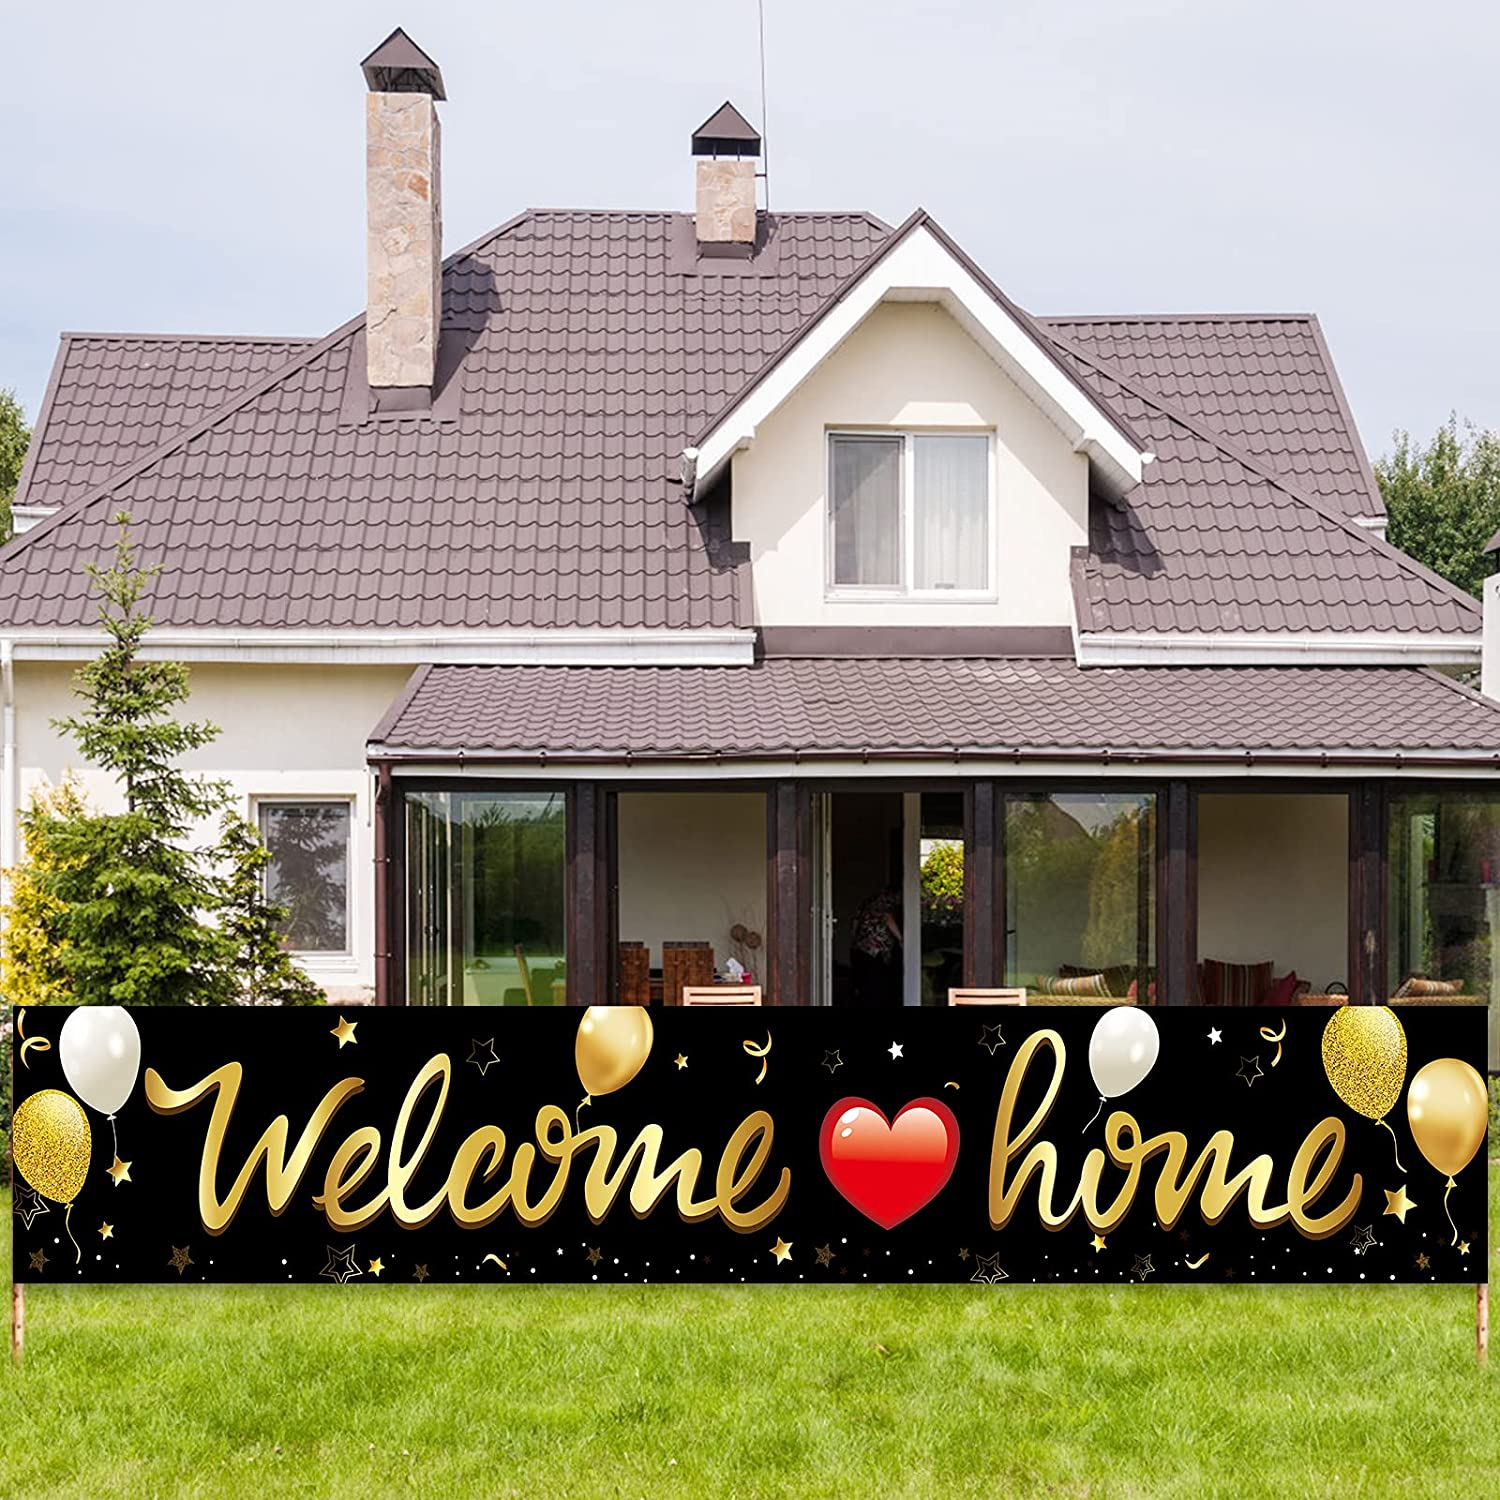 Welcome Home Banner Decoration, Black Gold Welcome Back Home Yard Sign for Outdoor Decor, Military Homecoming Deployment Returning Party Supplies